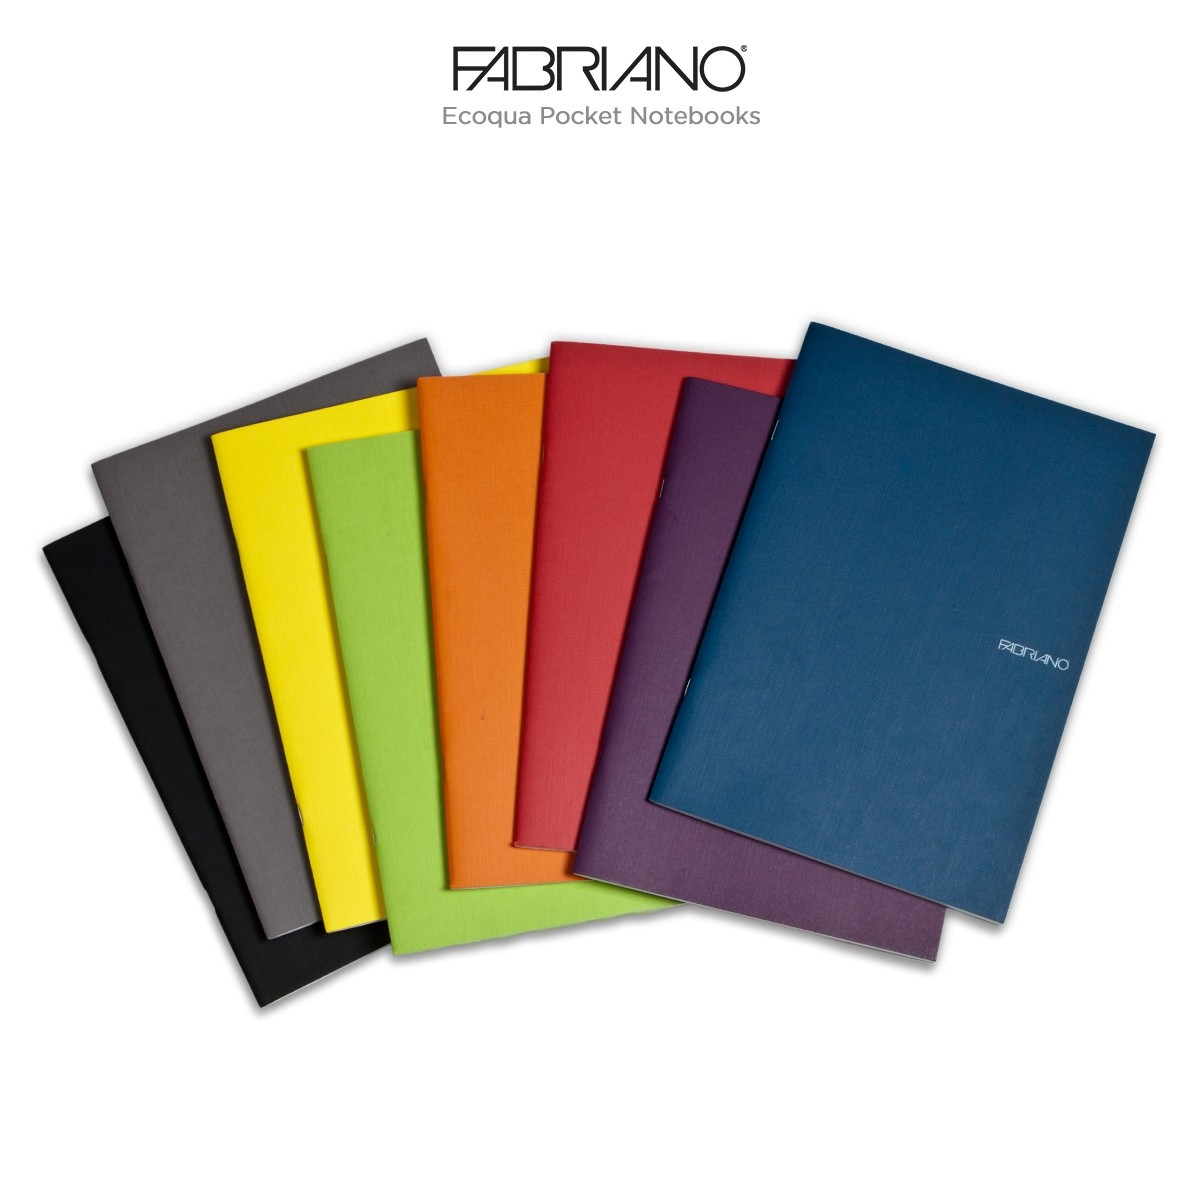 Fabriano EcoQua Pocket Notebooks